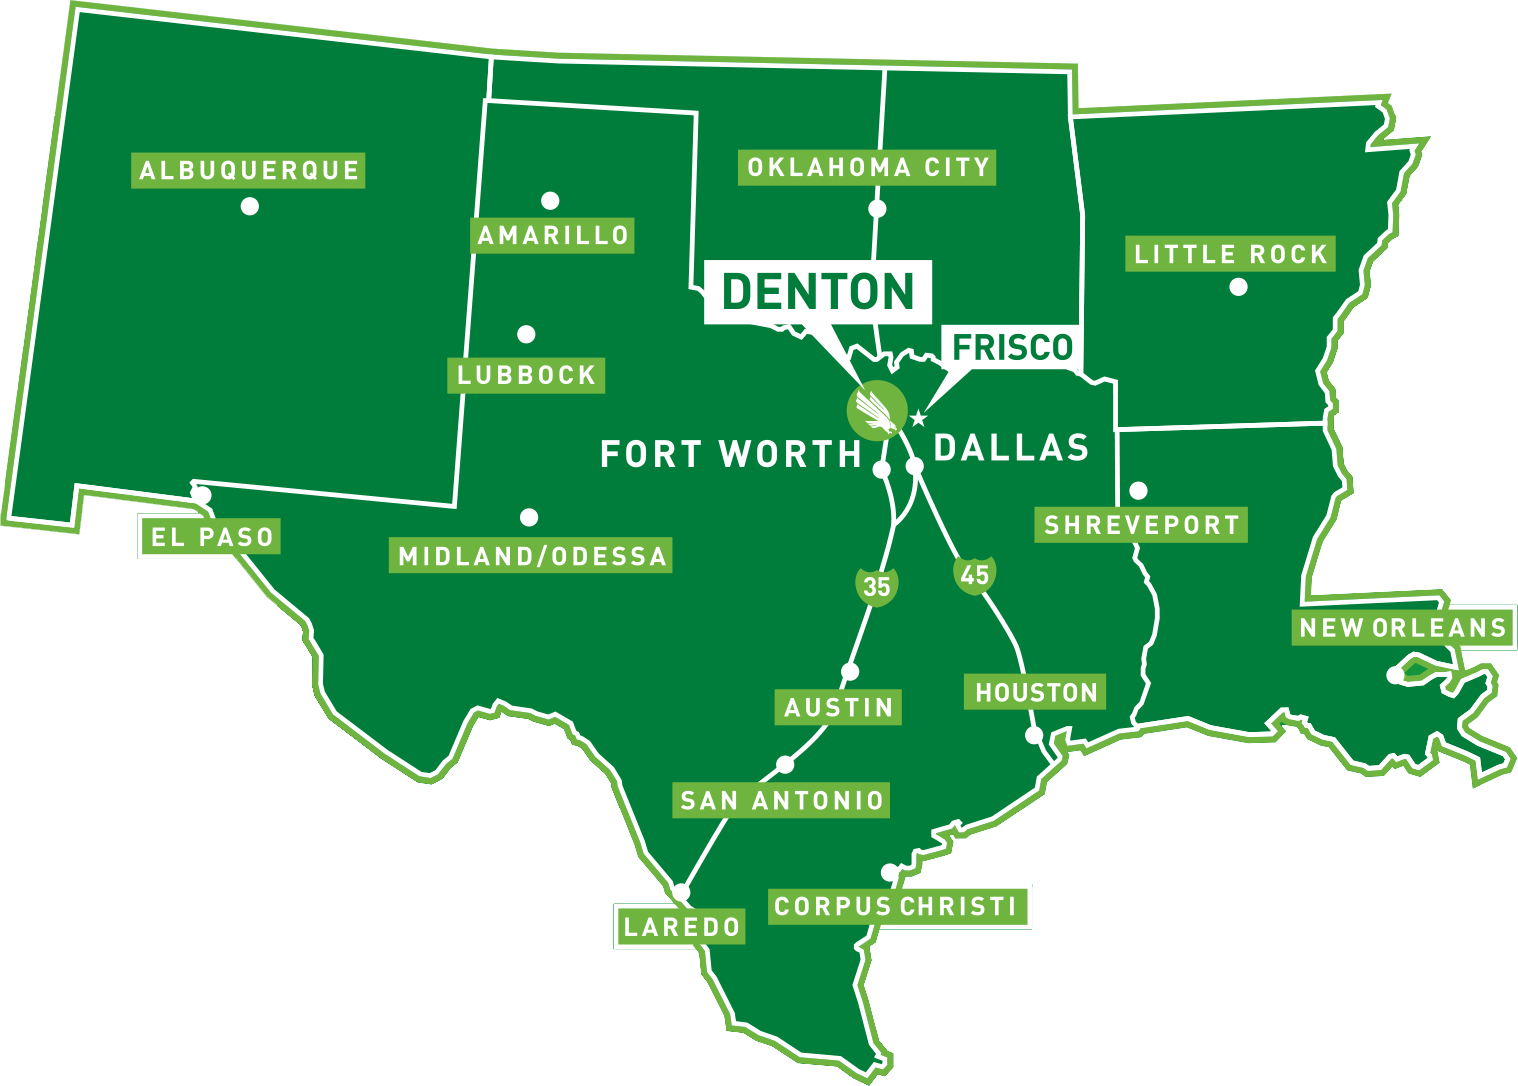 a map of Texas and surrounding states with the location of UNT's Denton and Frisco locations marked.